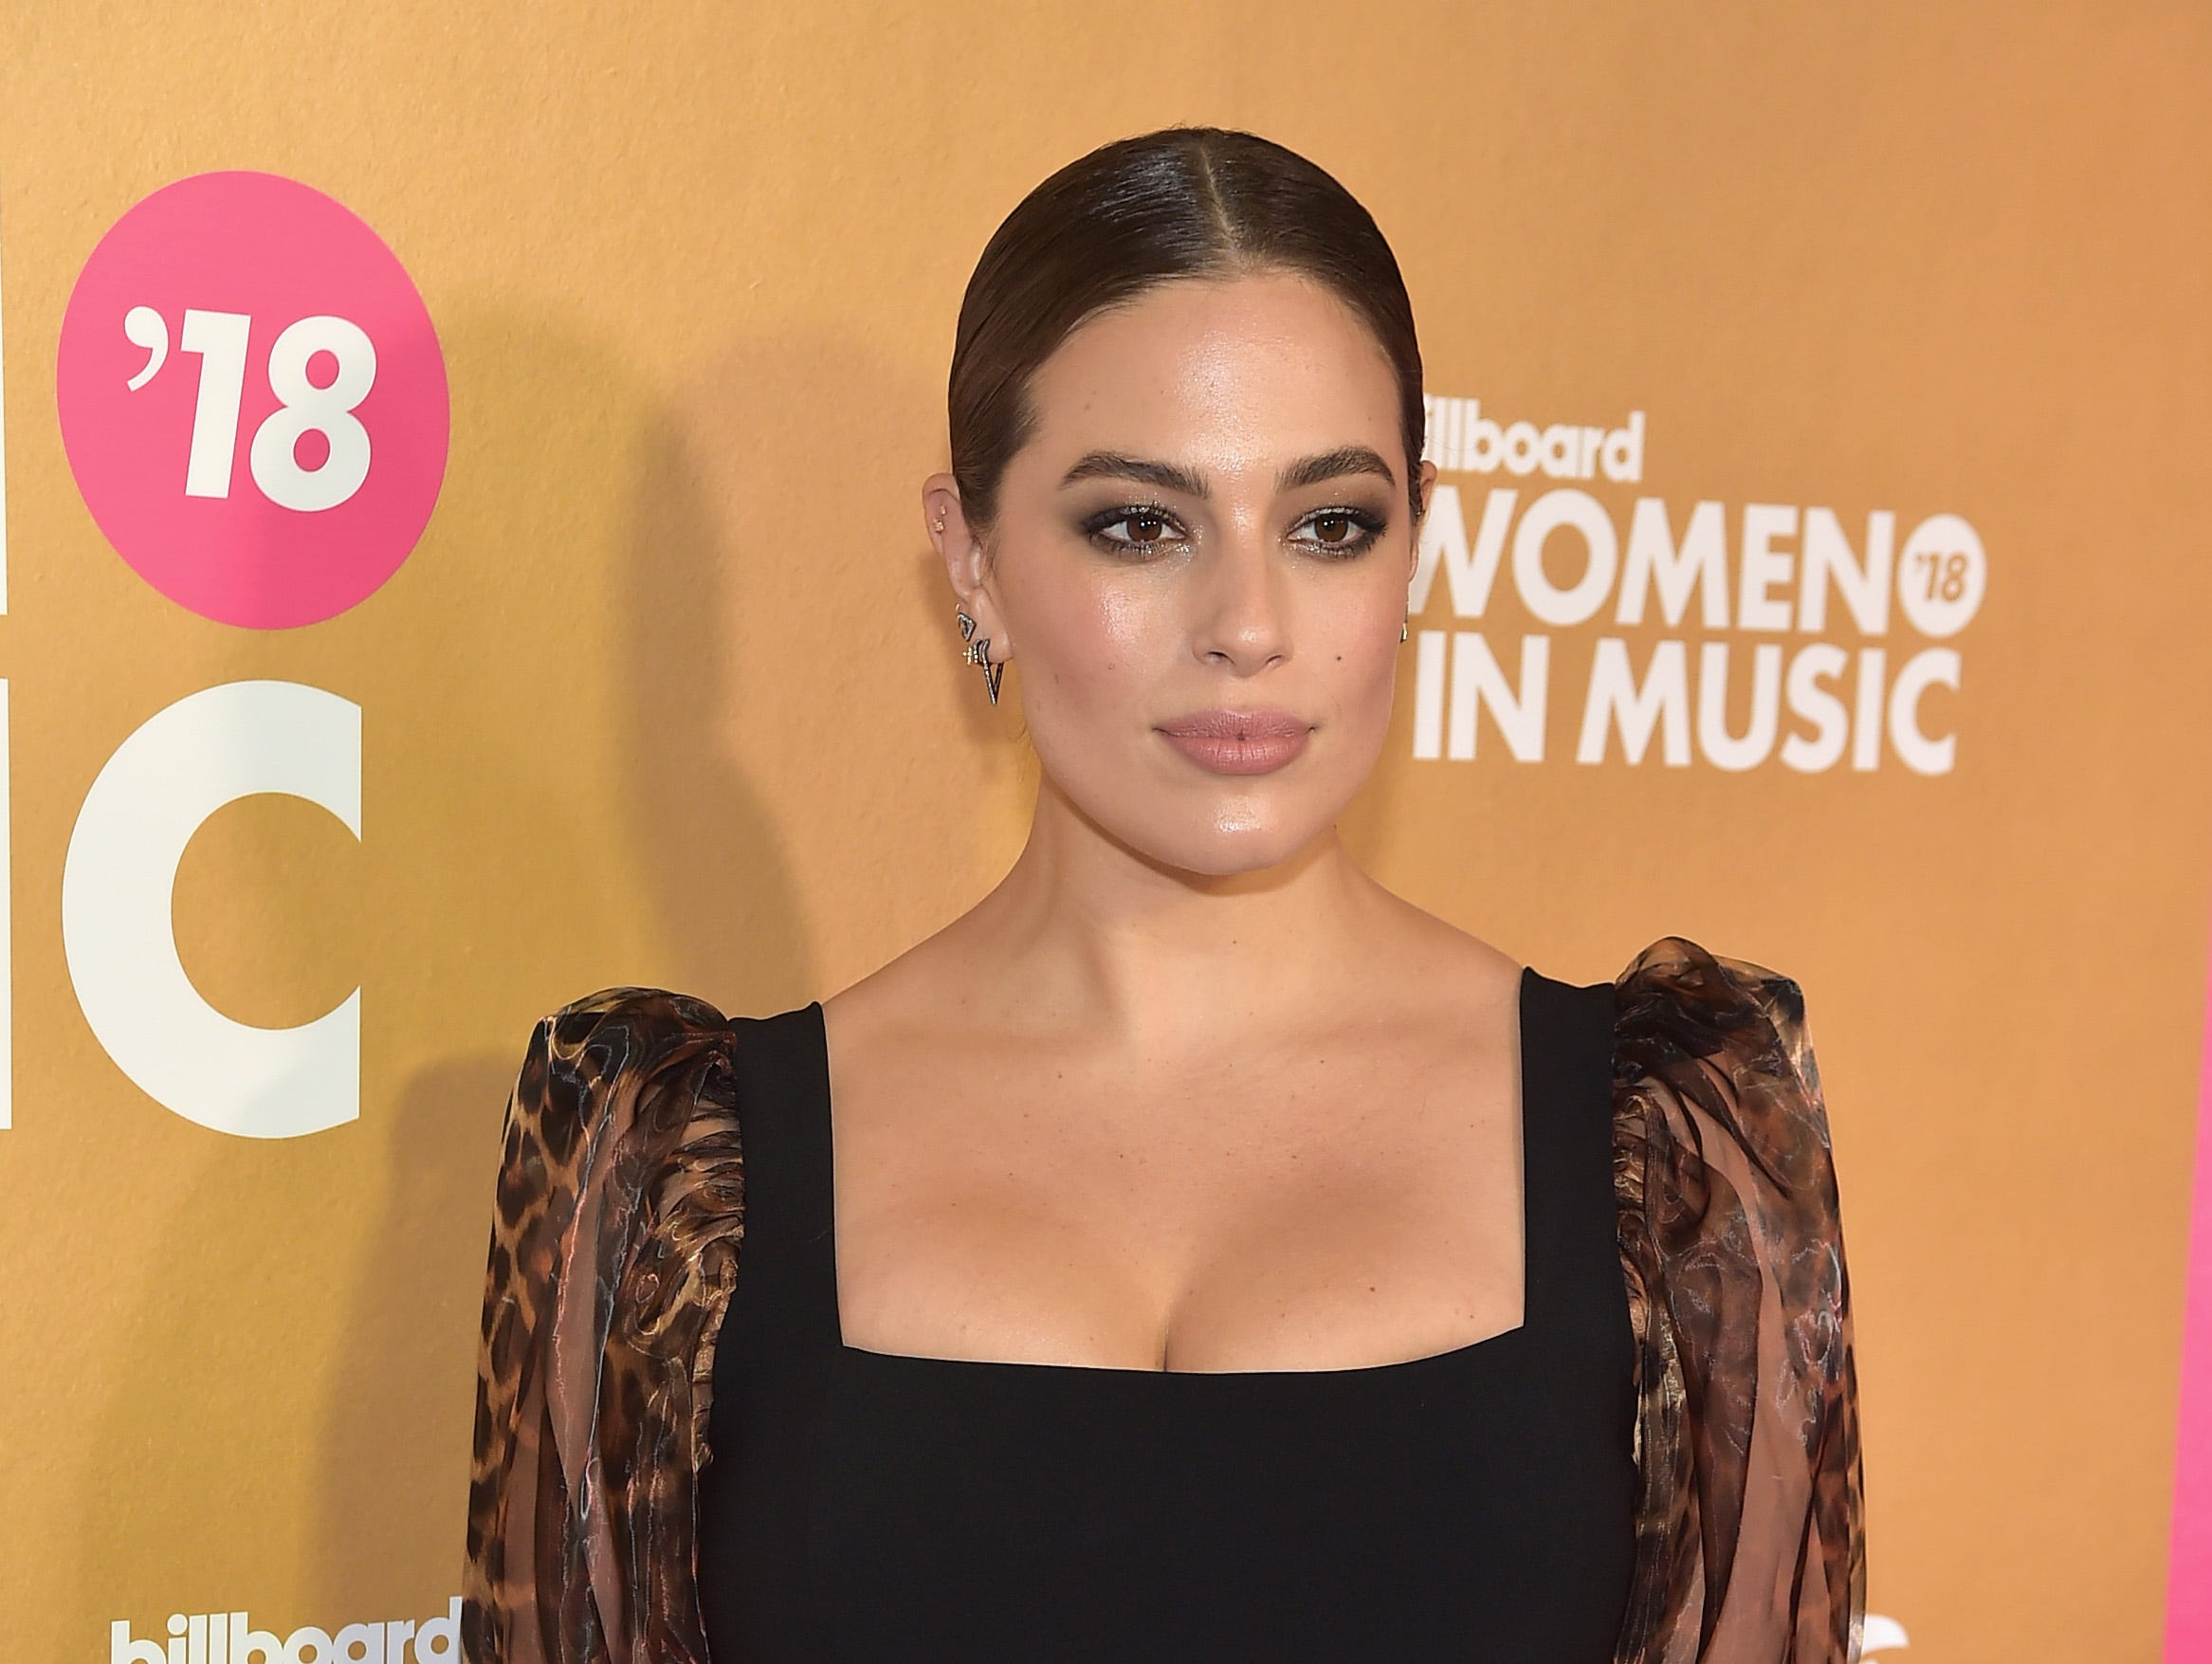 NEW YORK, NEW YORK - DECEMBER 06: Ashley Graham attends Billboard's 13th Annual Women In Music Event at Pier 36 on December 06, 2018 in New York City. (Photo by Theo Wargo/Getty Images) ORG XMIT: 775259767 ORIG FILE ID: 1078271748